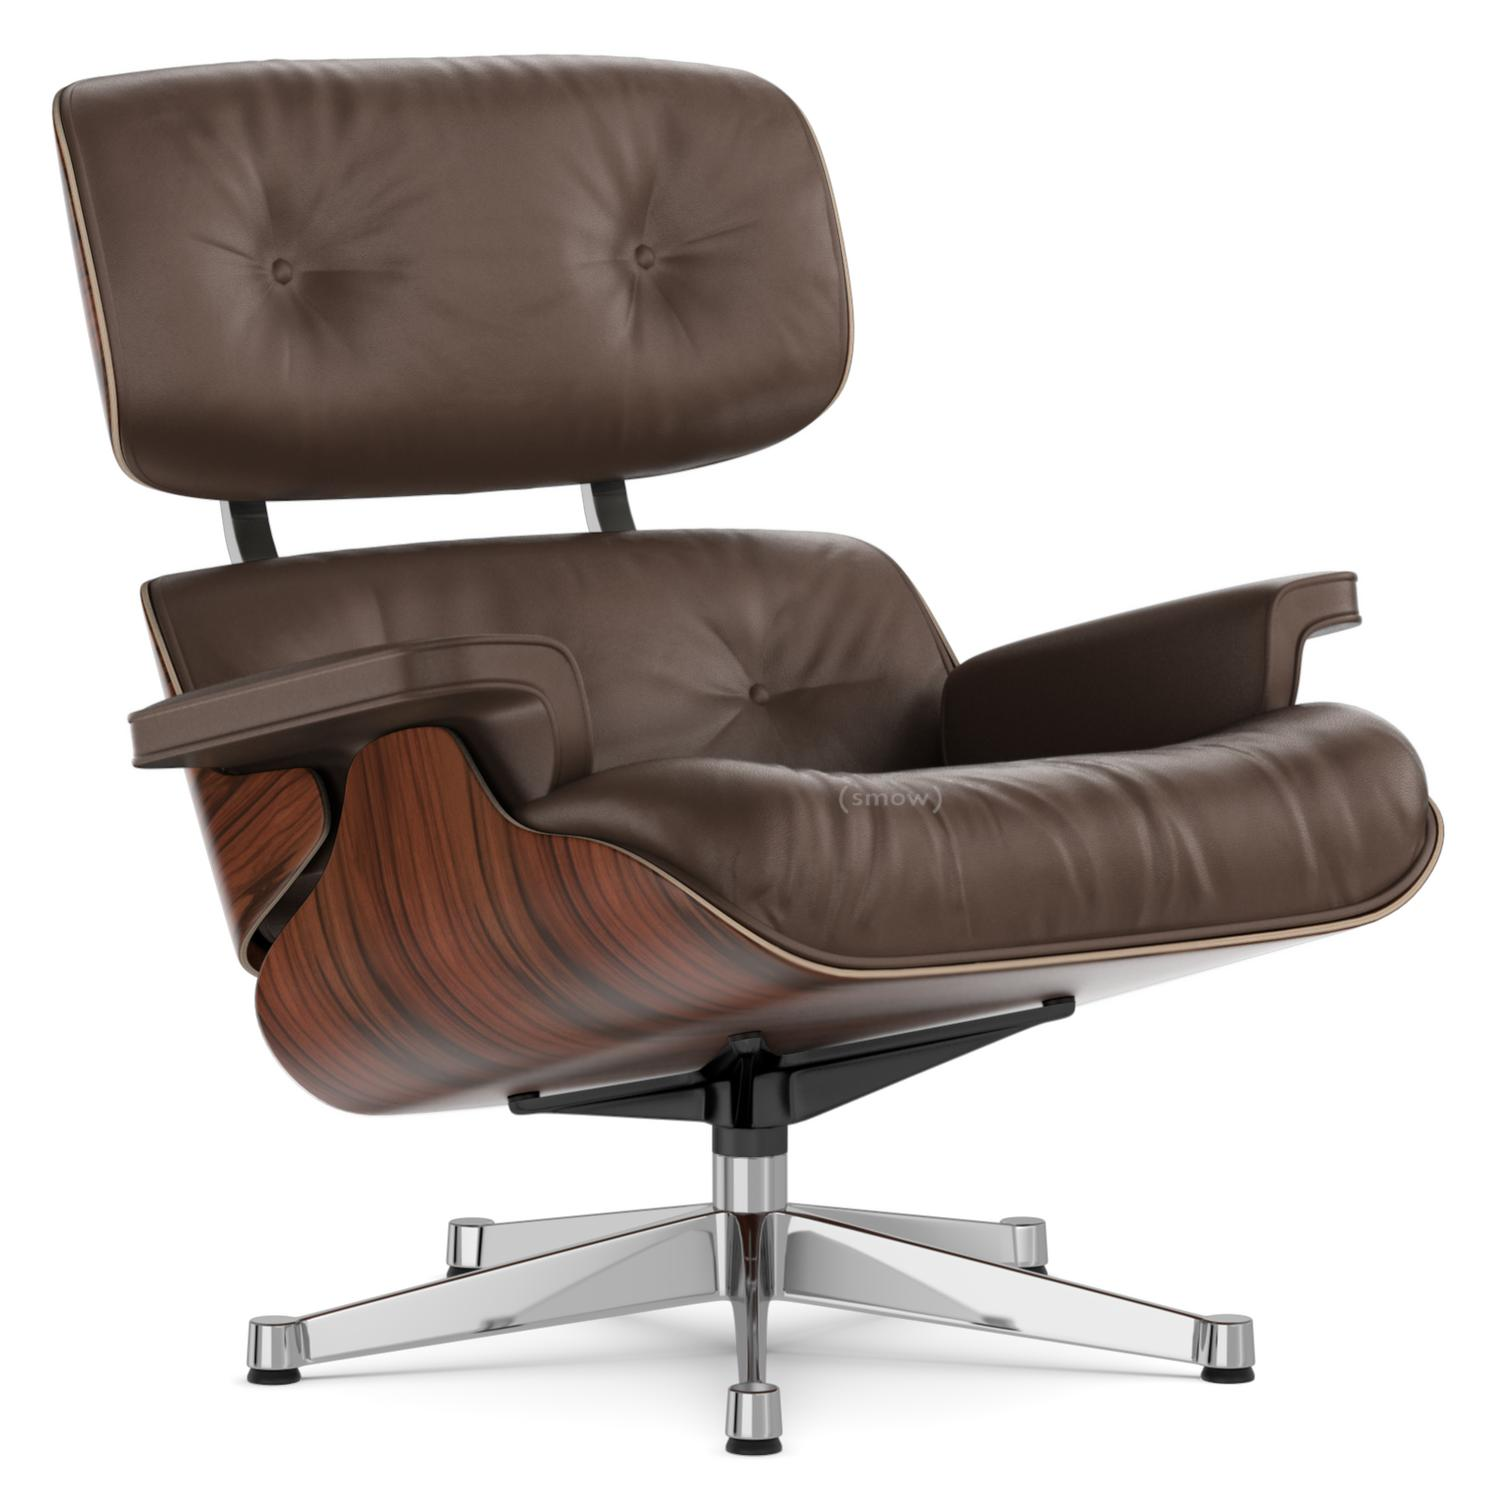 Eanes Chair Vitra Lounge Chair Santos Palisander Brown 84 Cm Original Height 1956 Aluminium Chrome Plated